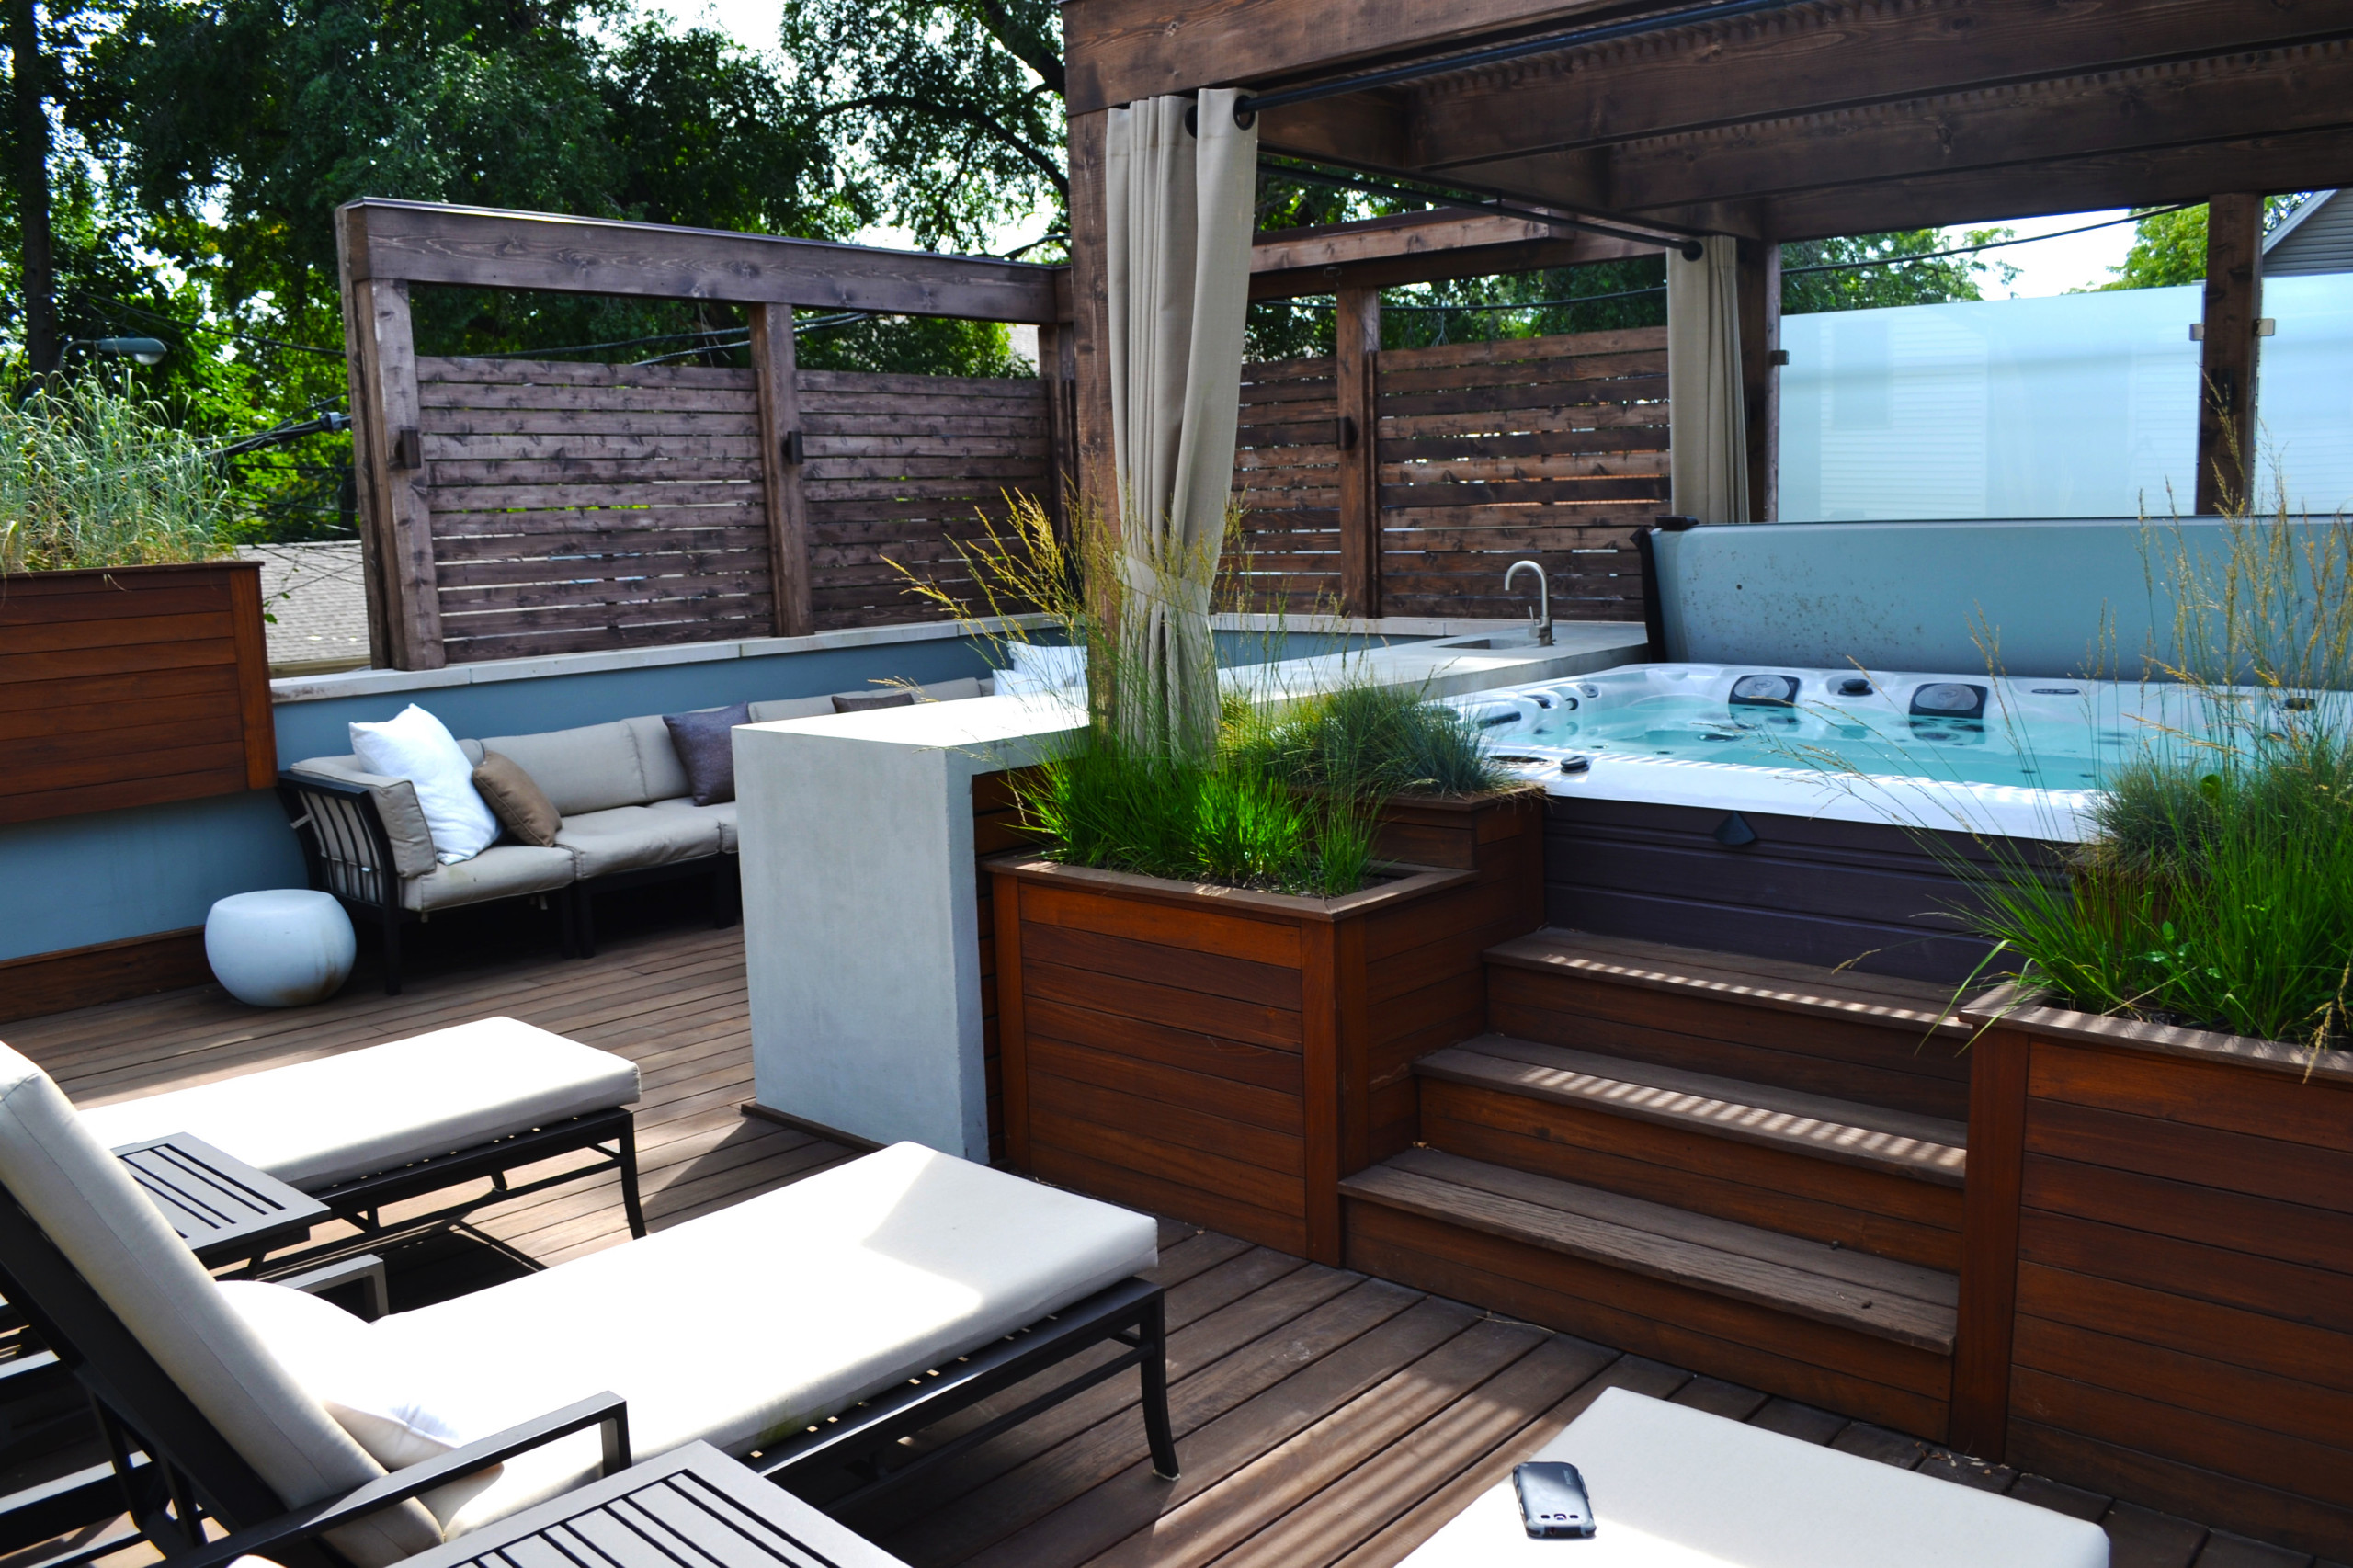 75 Beautiful Small Rooftop Deck Pictures Ideas October 2020 Houzz